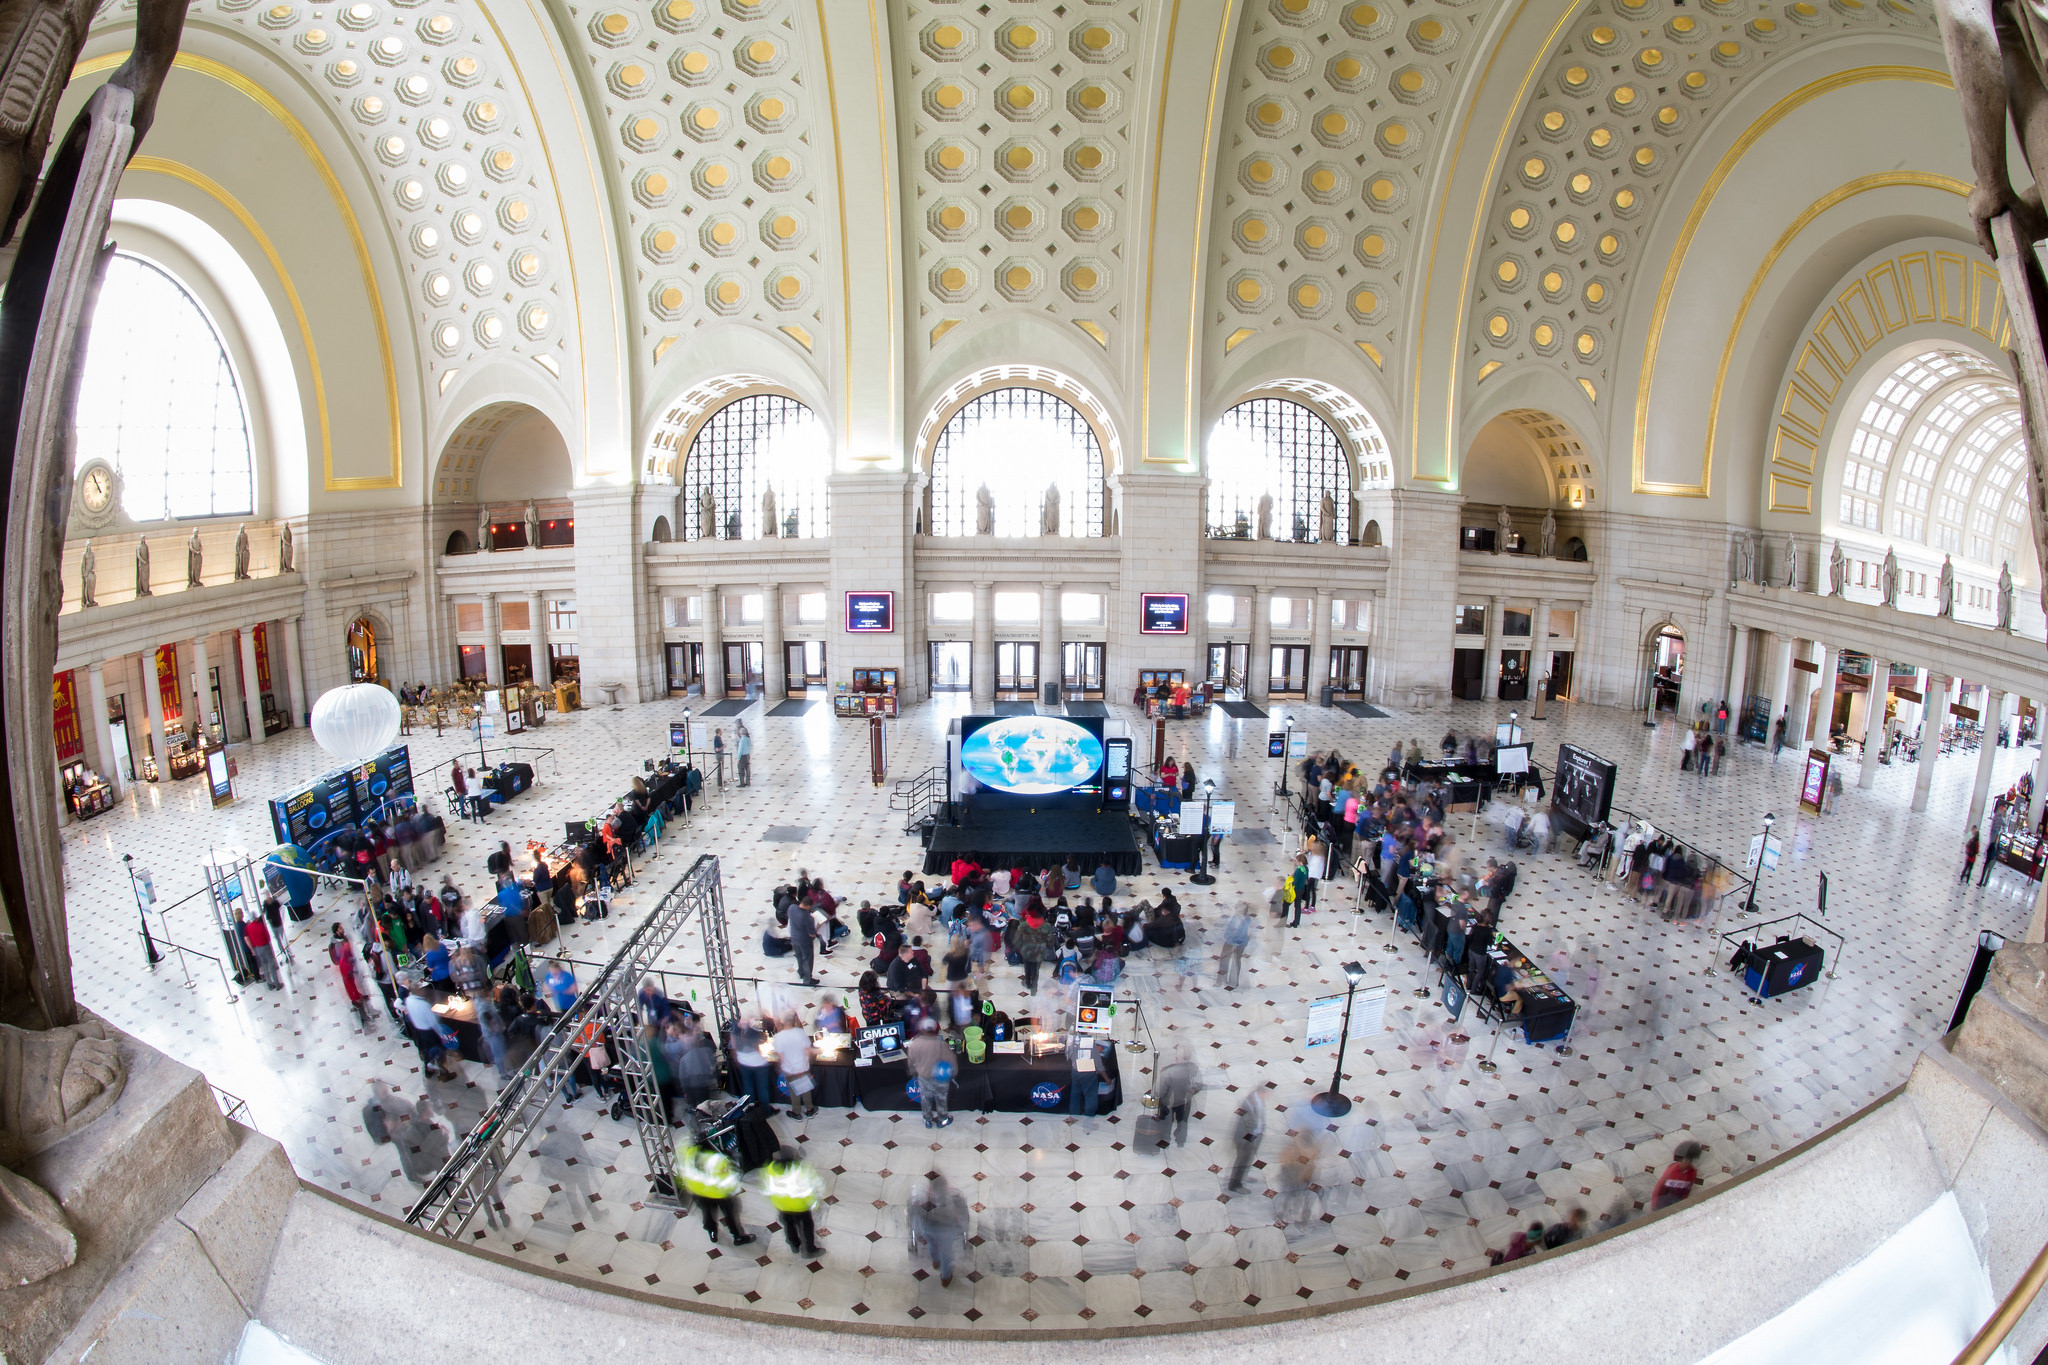 A view of the exhibits at the NASA Earth Day event on Thursday, April 19, 2018 at Union Station in Washington, D.C.